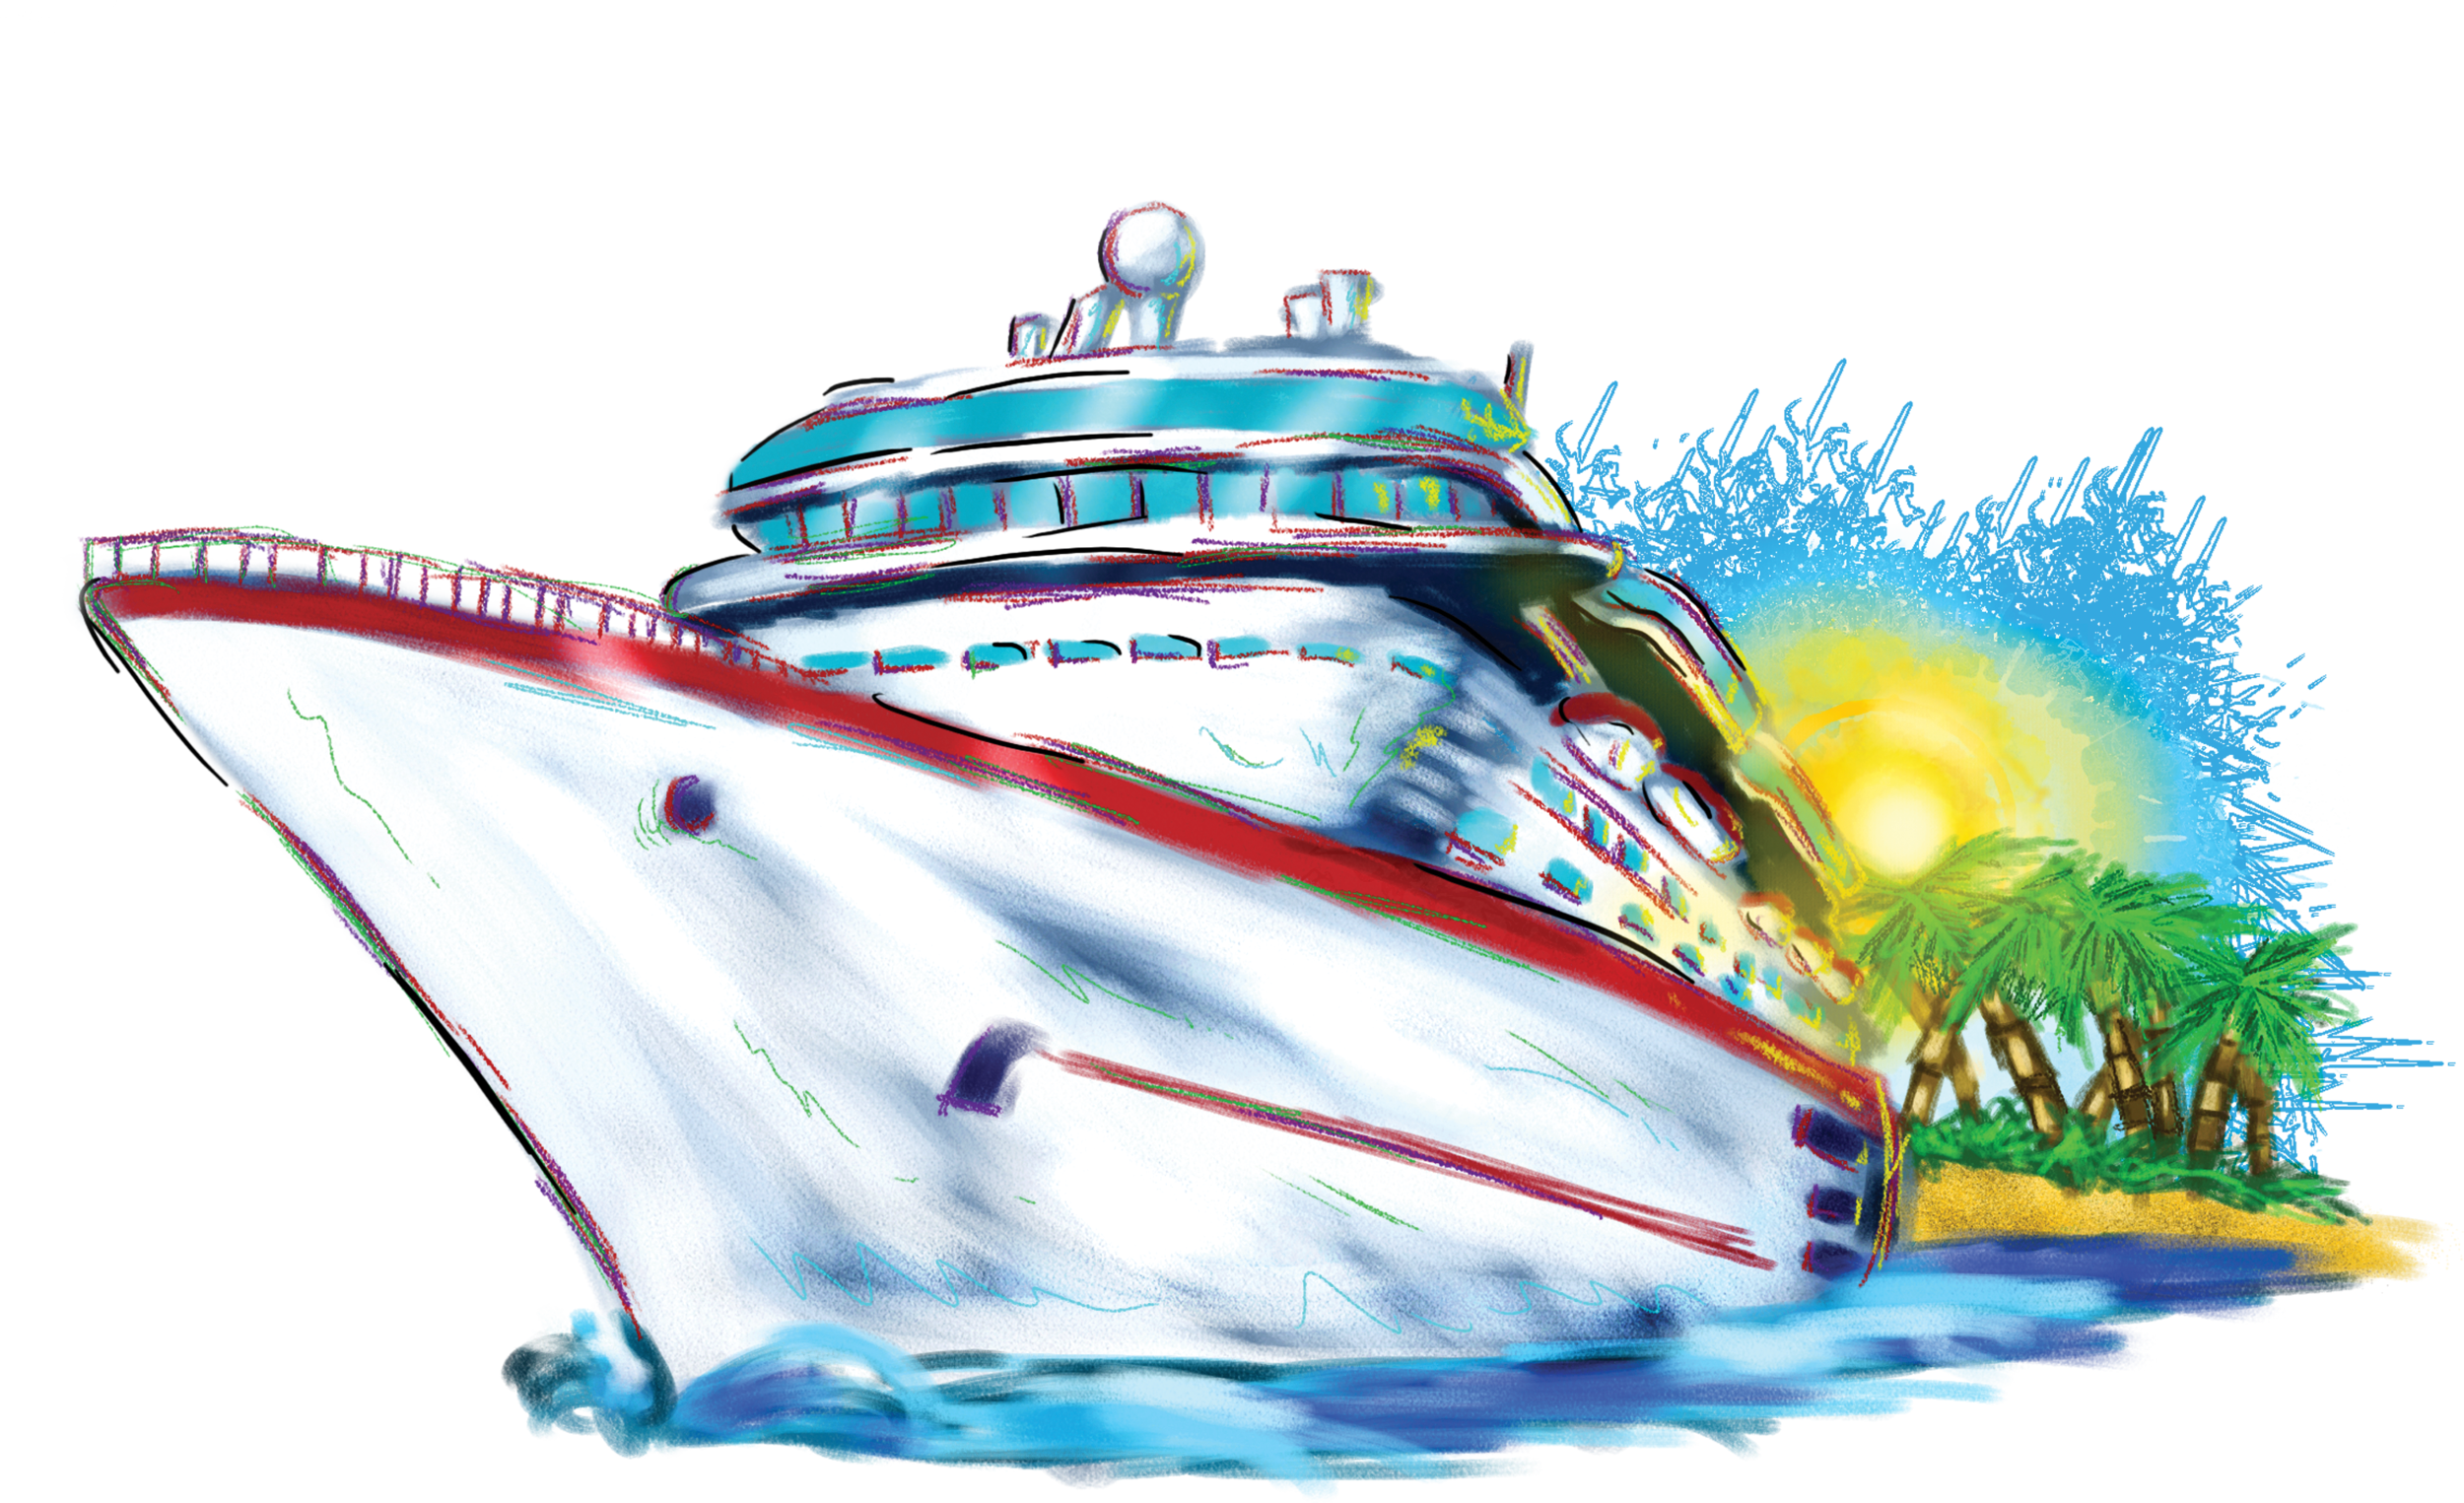 Cruise ship at getdrawings. Clipart boat passenger boat